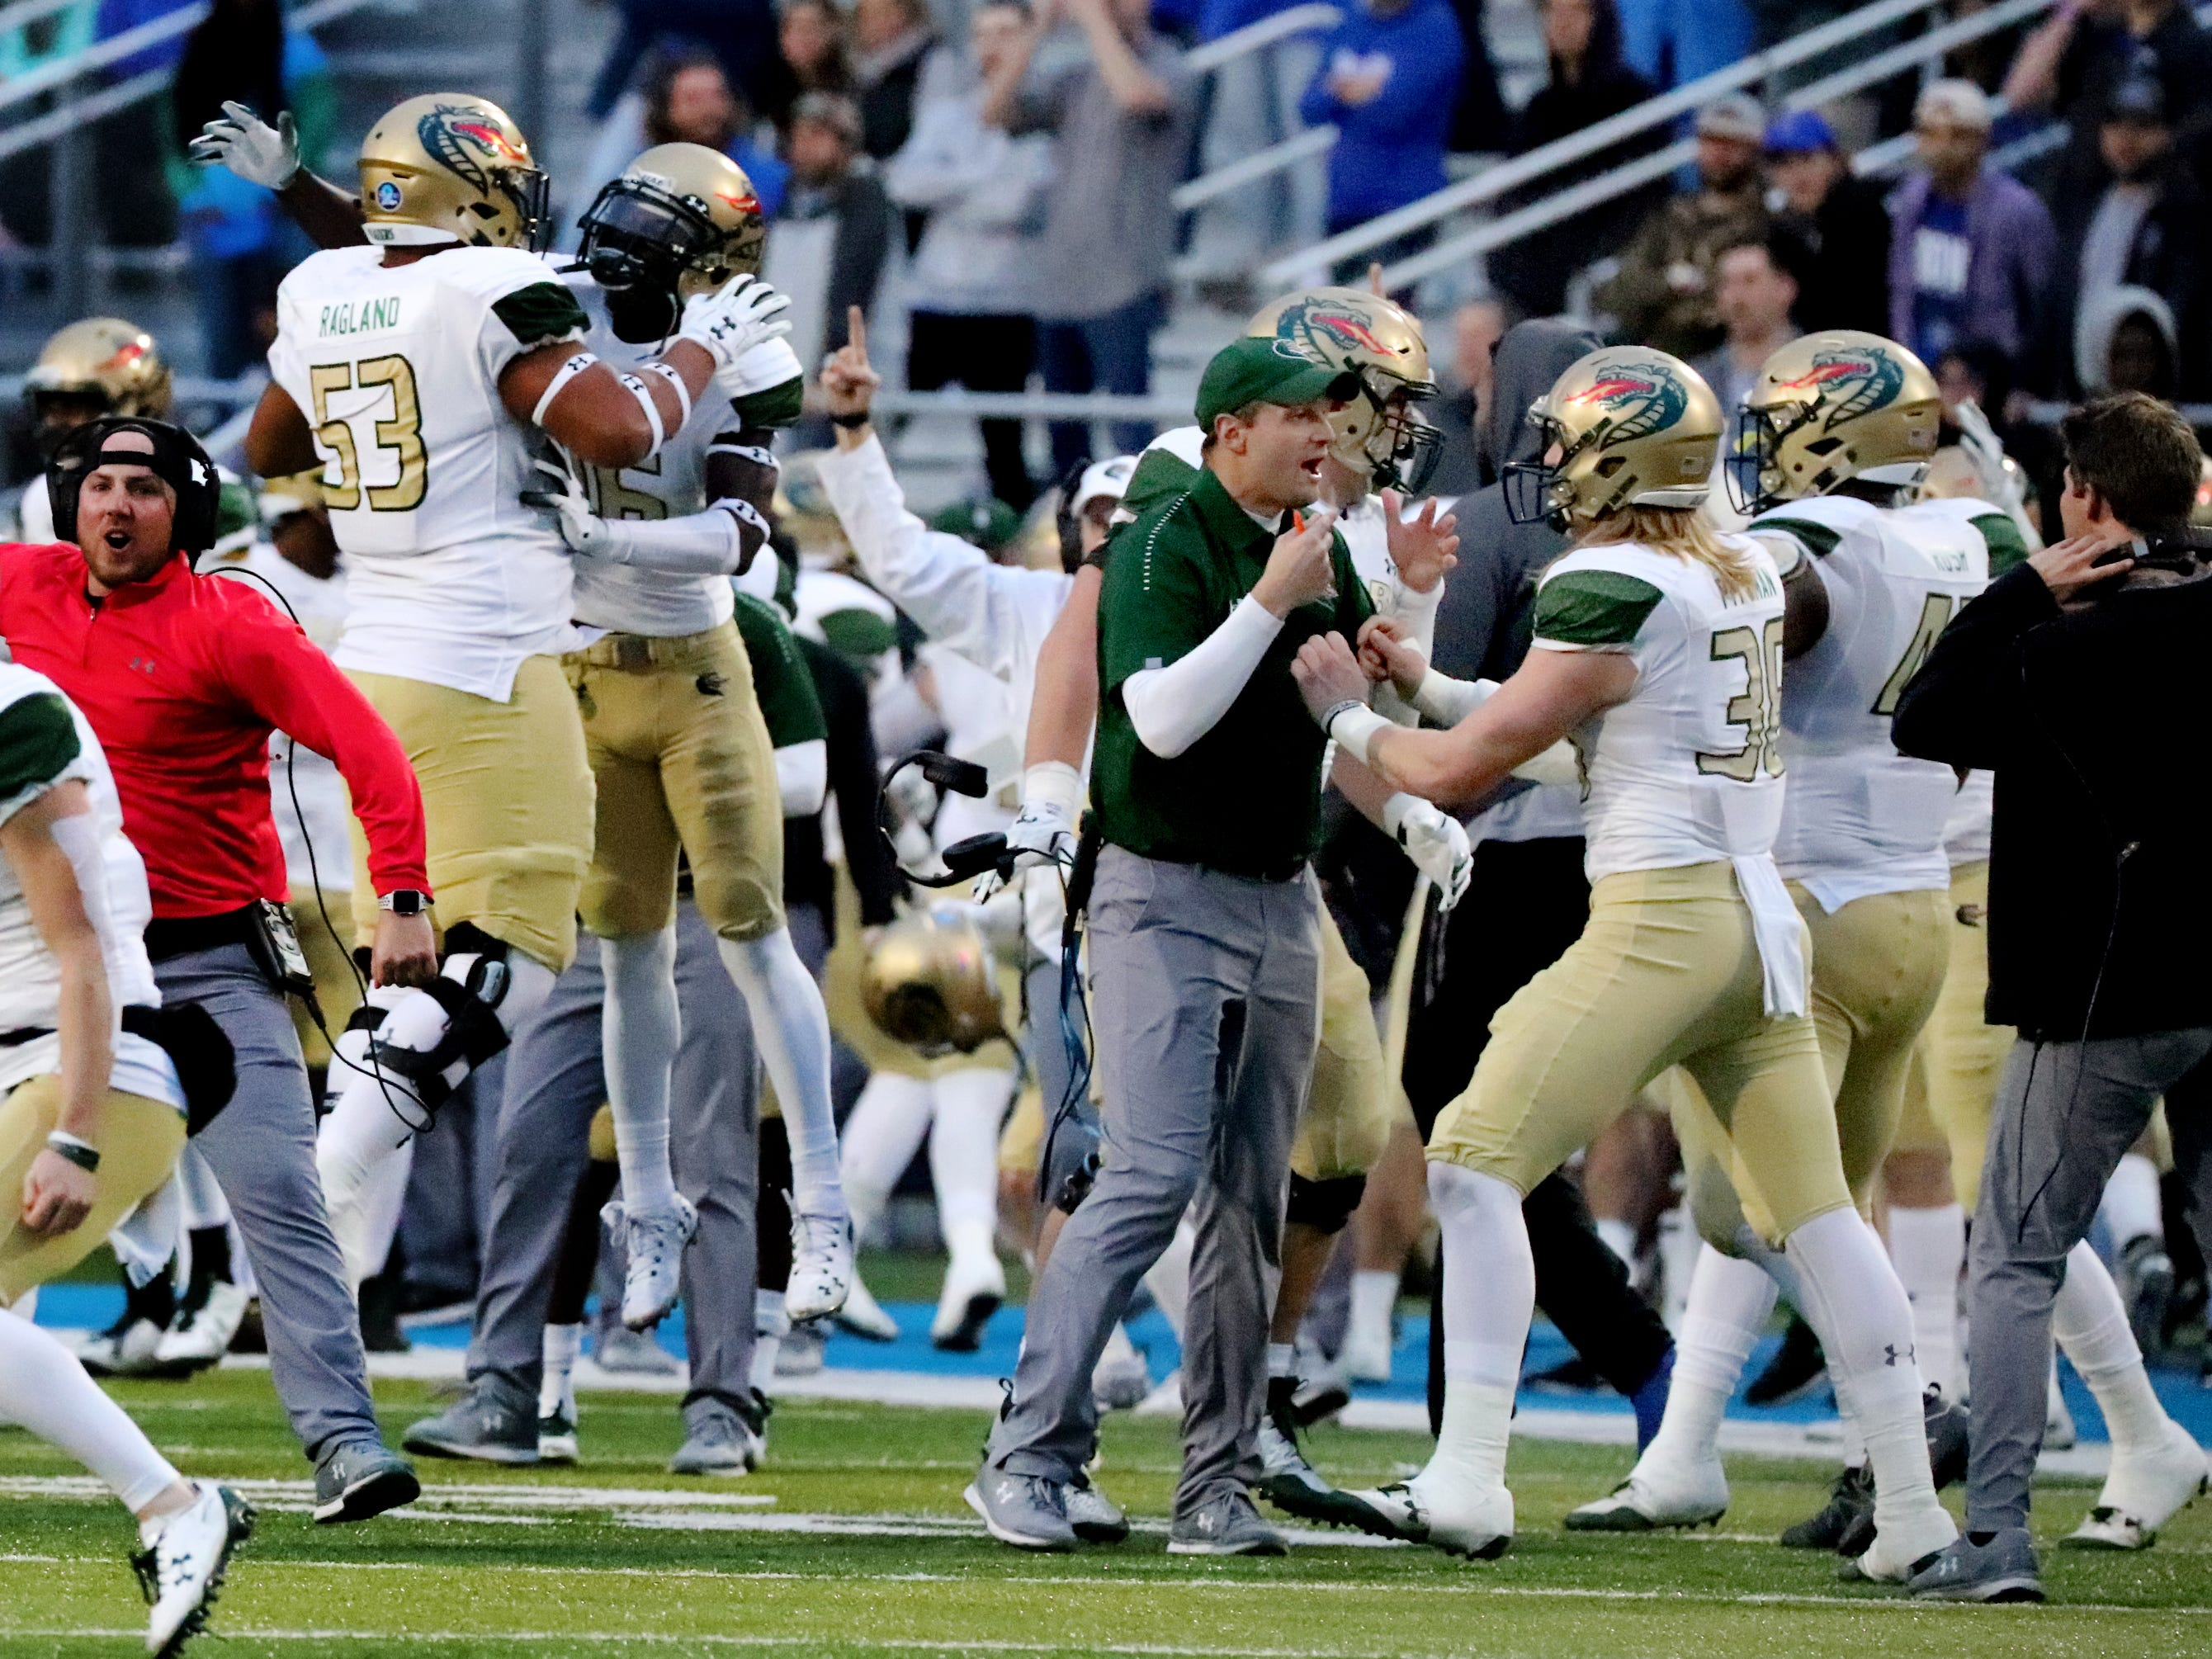 UAB celebrates after MTS has too many men on the field allowing them to regain possession of the ball in the final seconds of the game during the Conference USA Championship at MTSU on Saturday, Dec. 1, 2018.